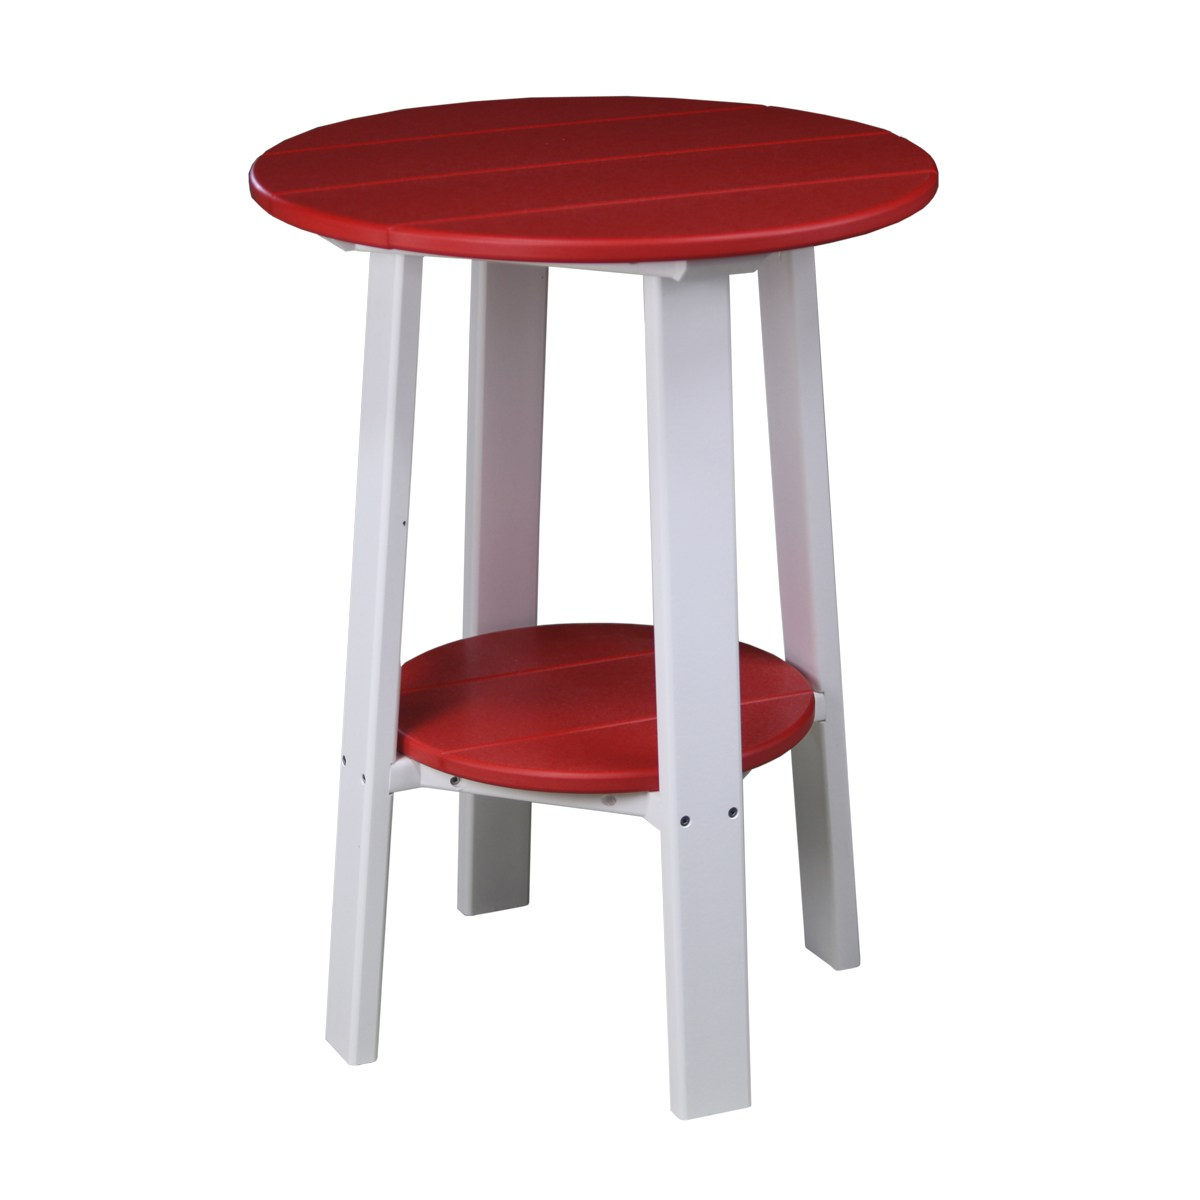 Tall White End Table Tall Deluxe End Table Patio Accessories Side Tables